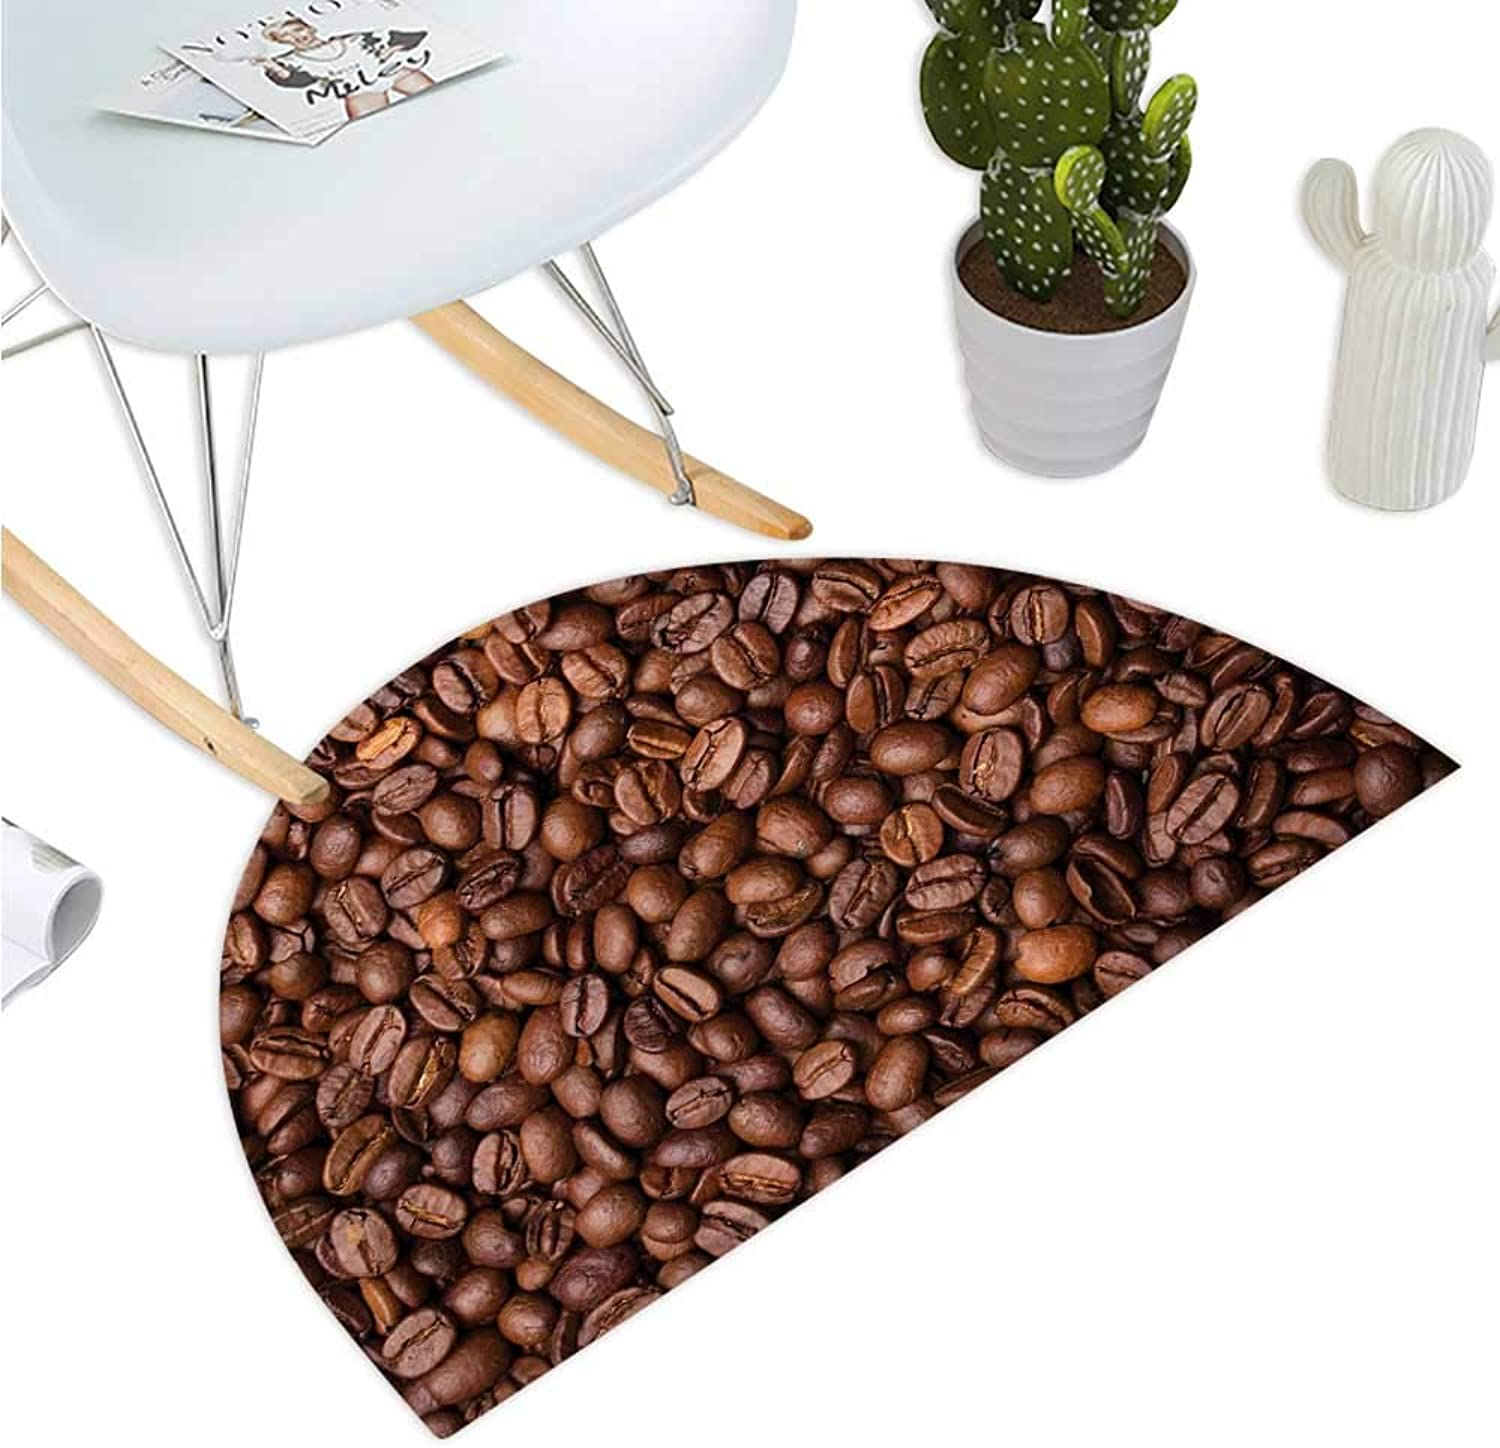 Chocolate Semicircle Doormat Freshly Roasted Coffee Grains Aromatic Seeds Caffeine Sources Espresso Ingredient Halfmoon doormats H 39.3  xD 59  Brown